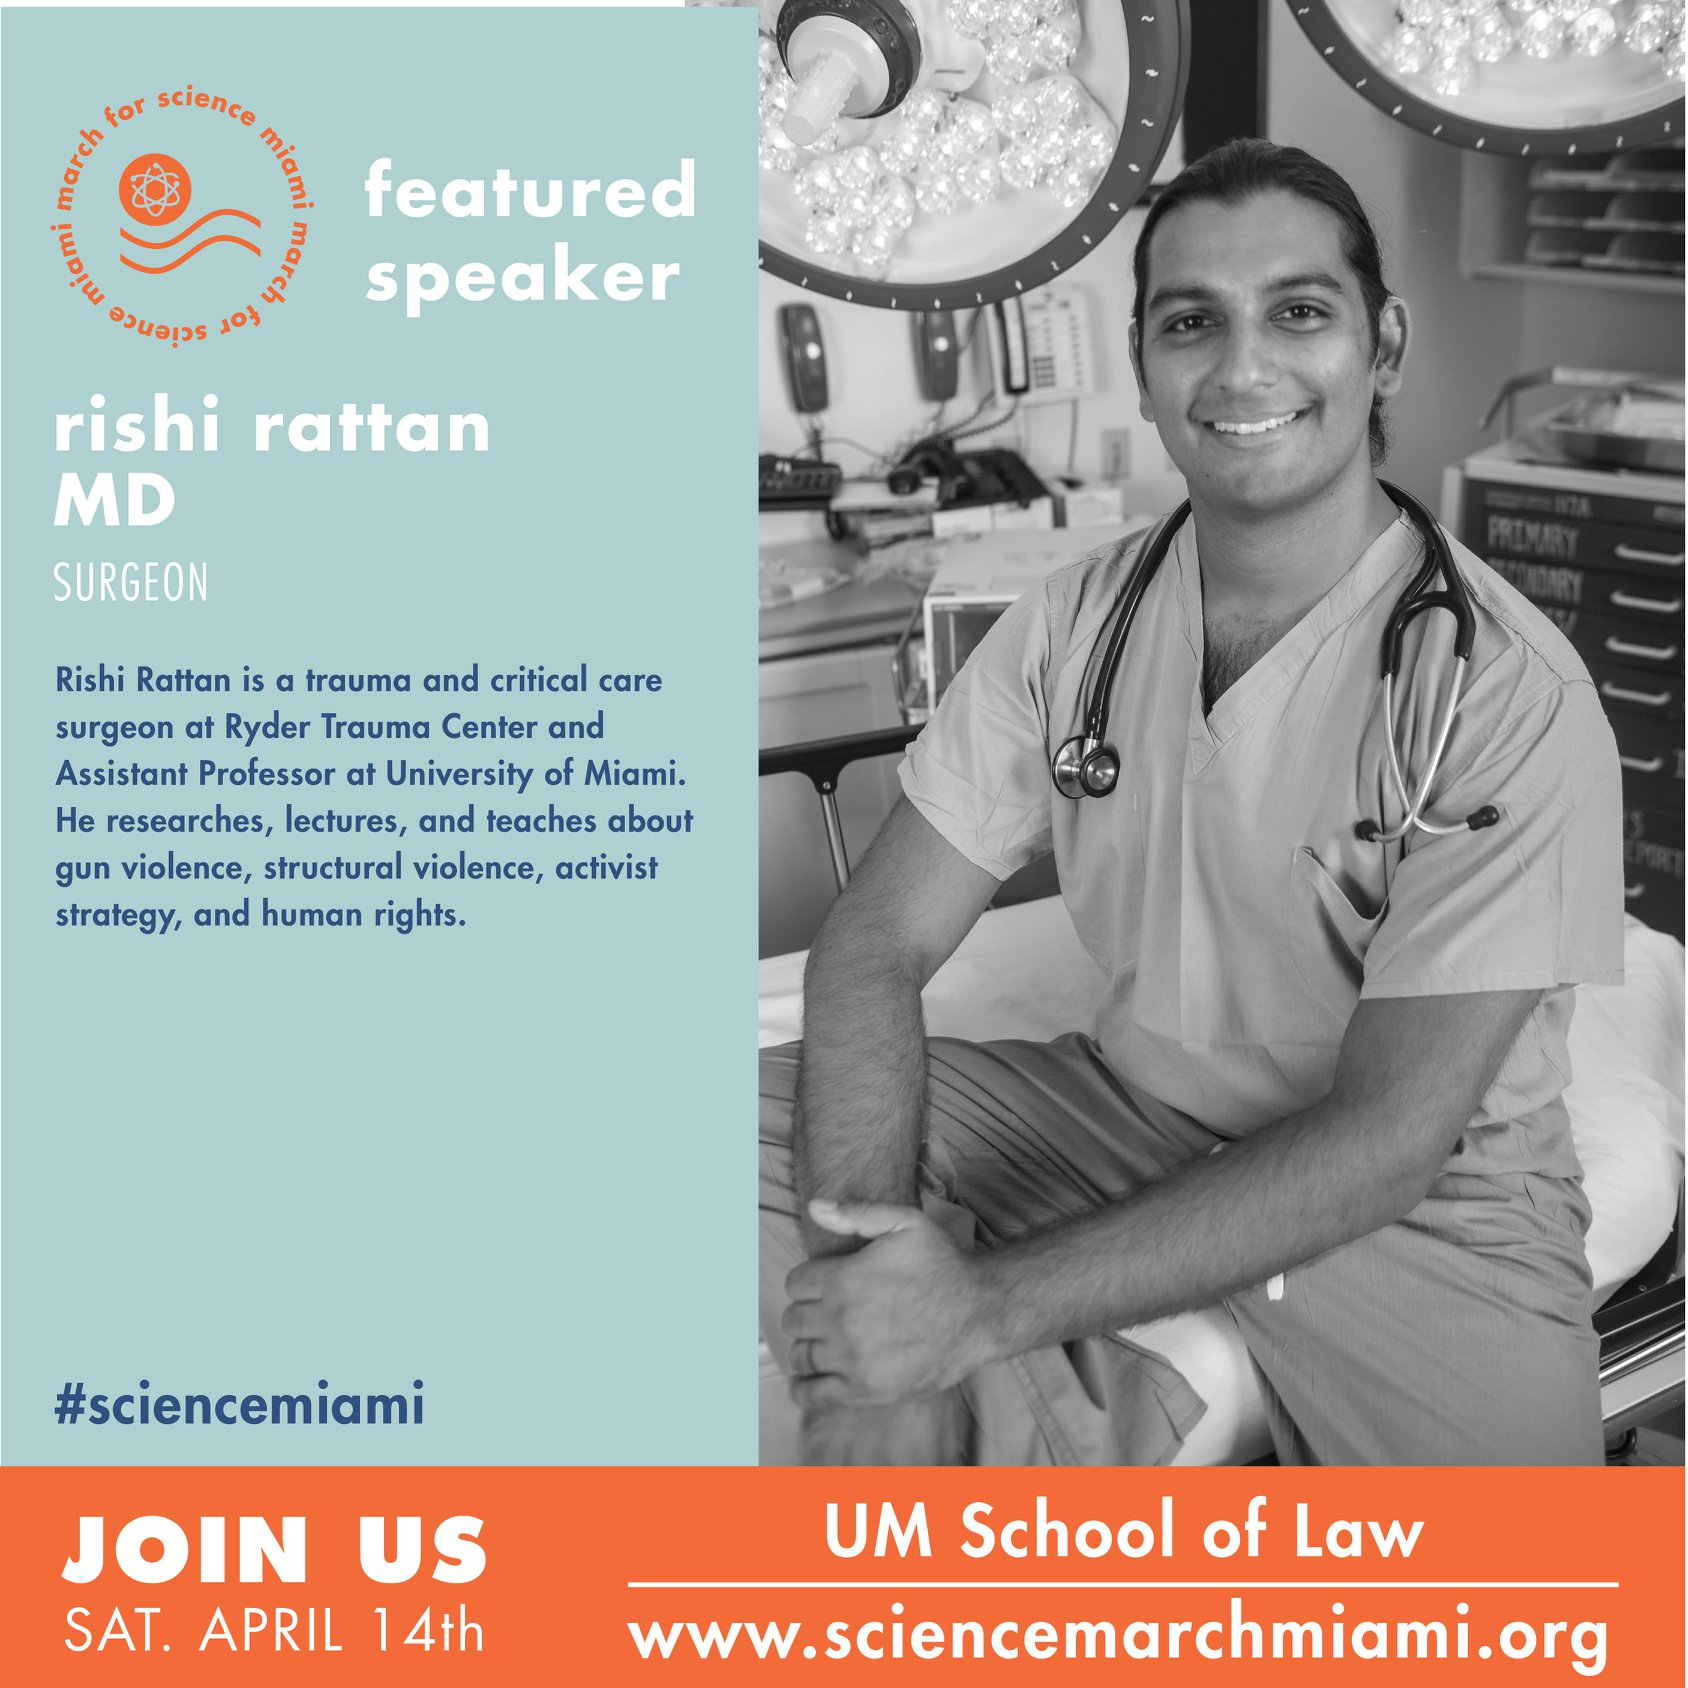 rishi rattan, m.d.   Trauma surgeon at Ryder trauma center, assistant professor at University of miami, and human rights/gun violence prevention activist. follow the cause at  Everytown for gun safety , the  giffords law center , and the  educational fund to stop gun violence .